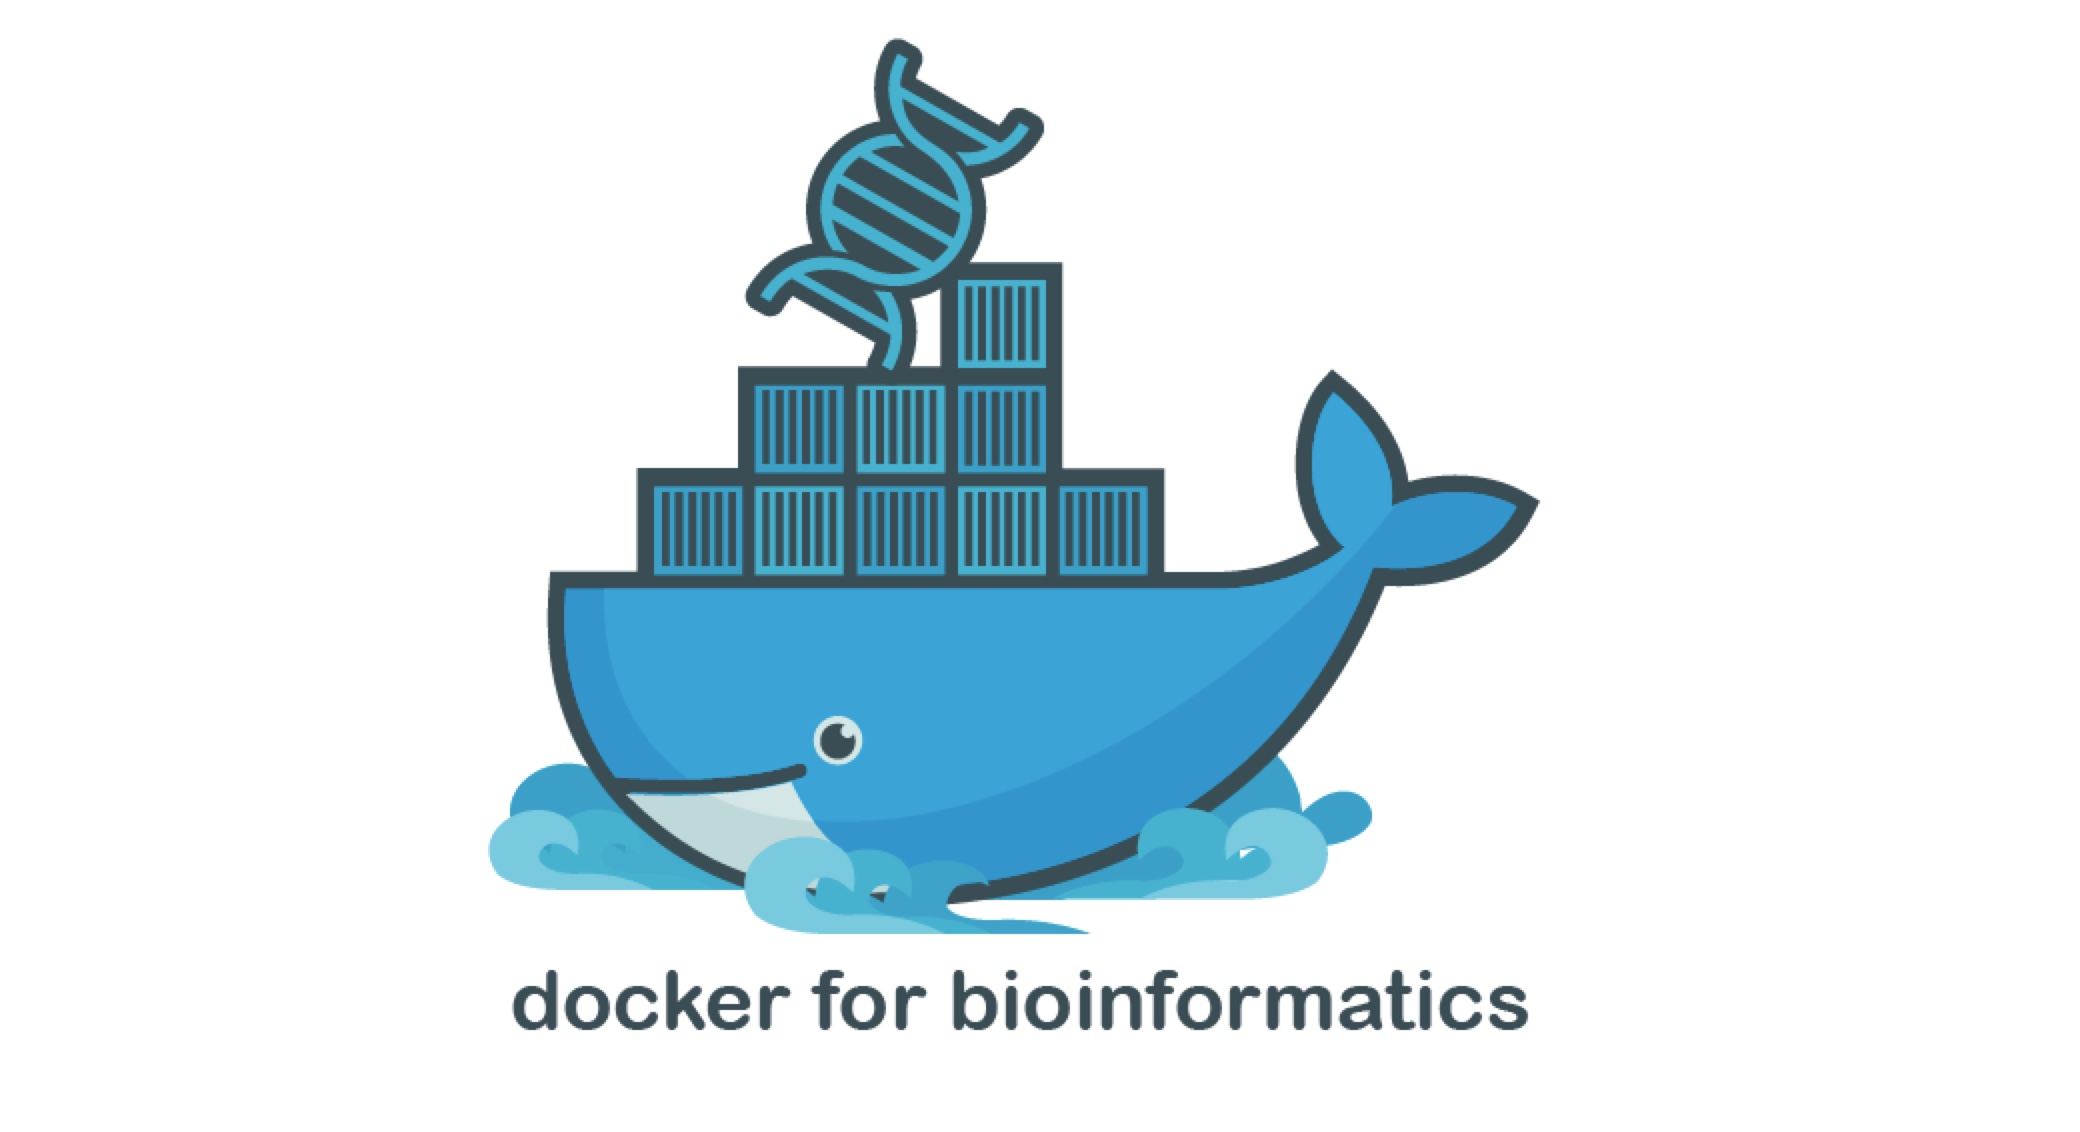 How to build Bioinformatic tools image for docker